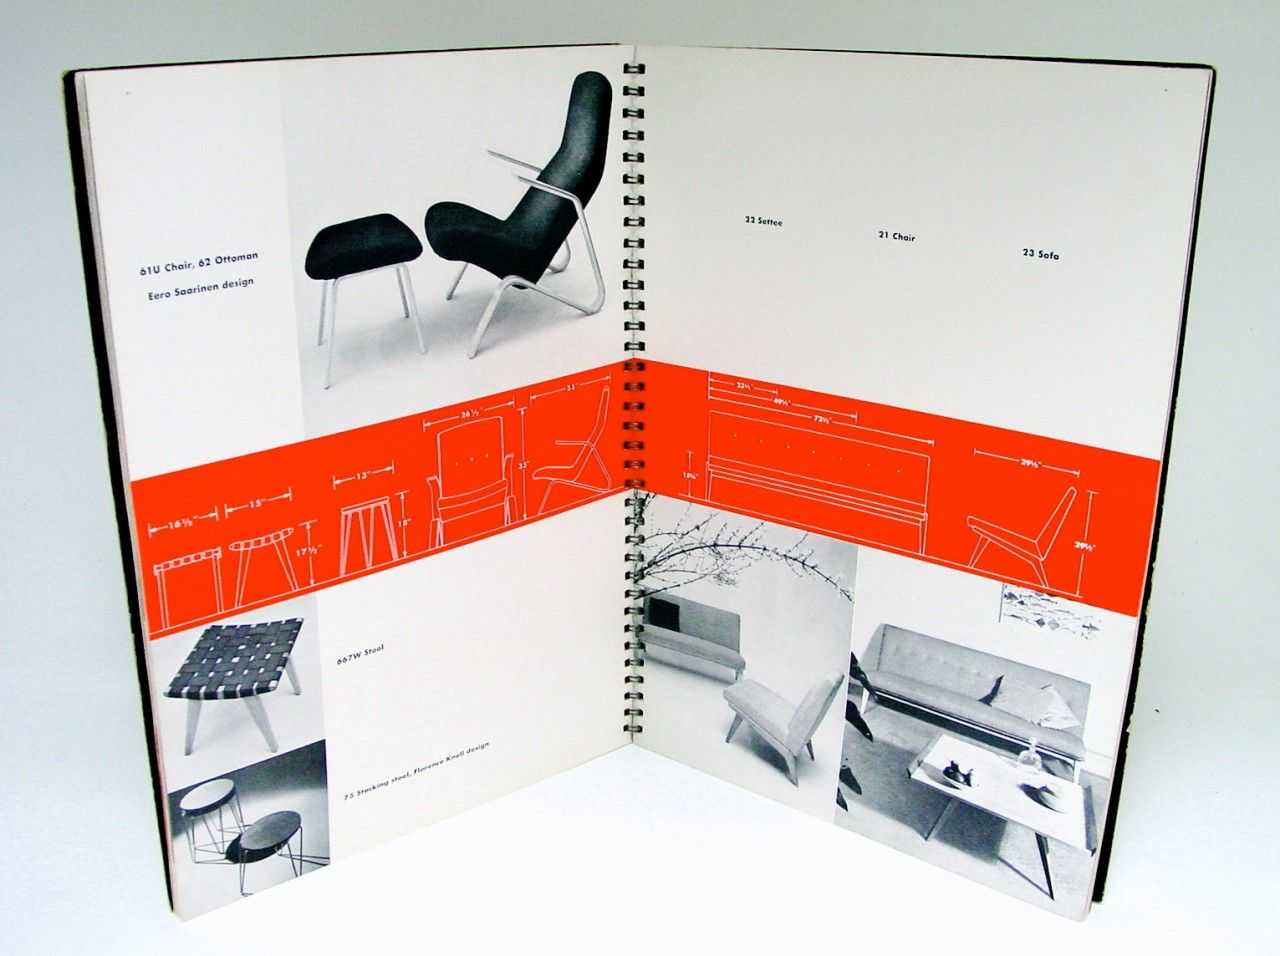 classy chair logo design. theimportanceofbeingmodernist  Classy Knoll associates catalogue Images from a probably the late early designed by Herbert 1950 s